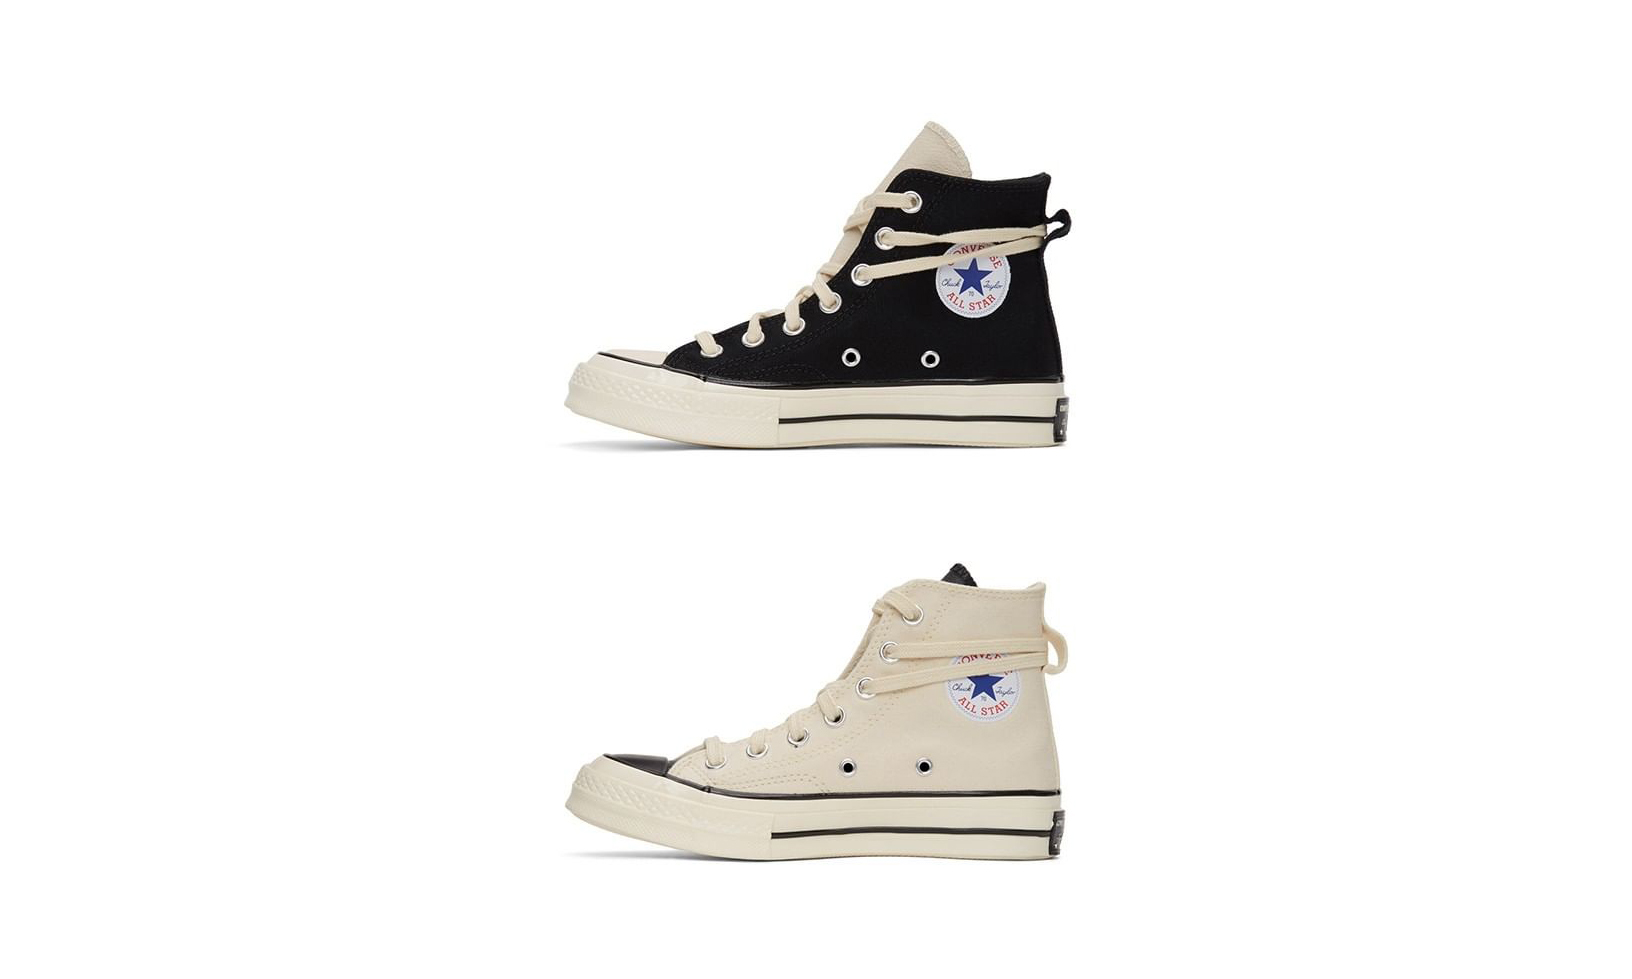 SSENSE 今日将补货发售 ESSENTIALS x CONVERSE Chuck 70